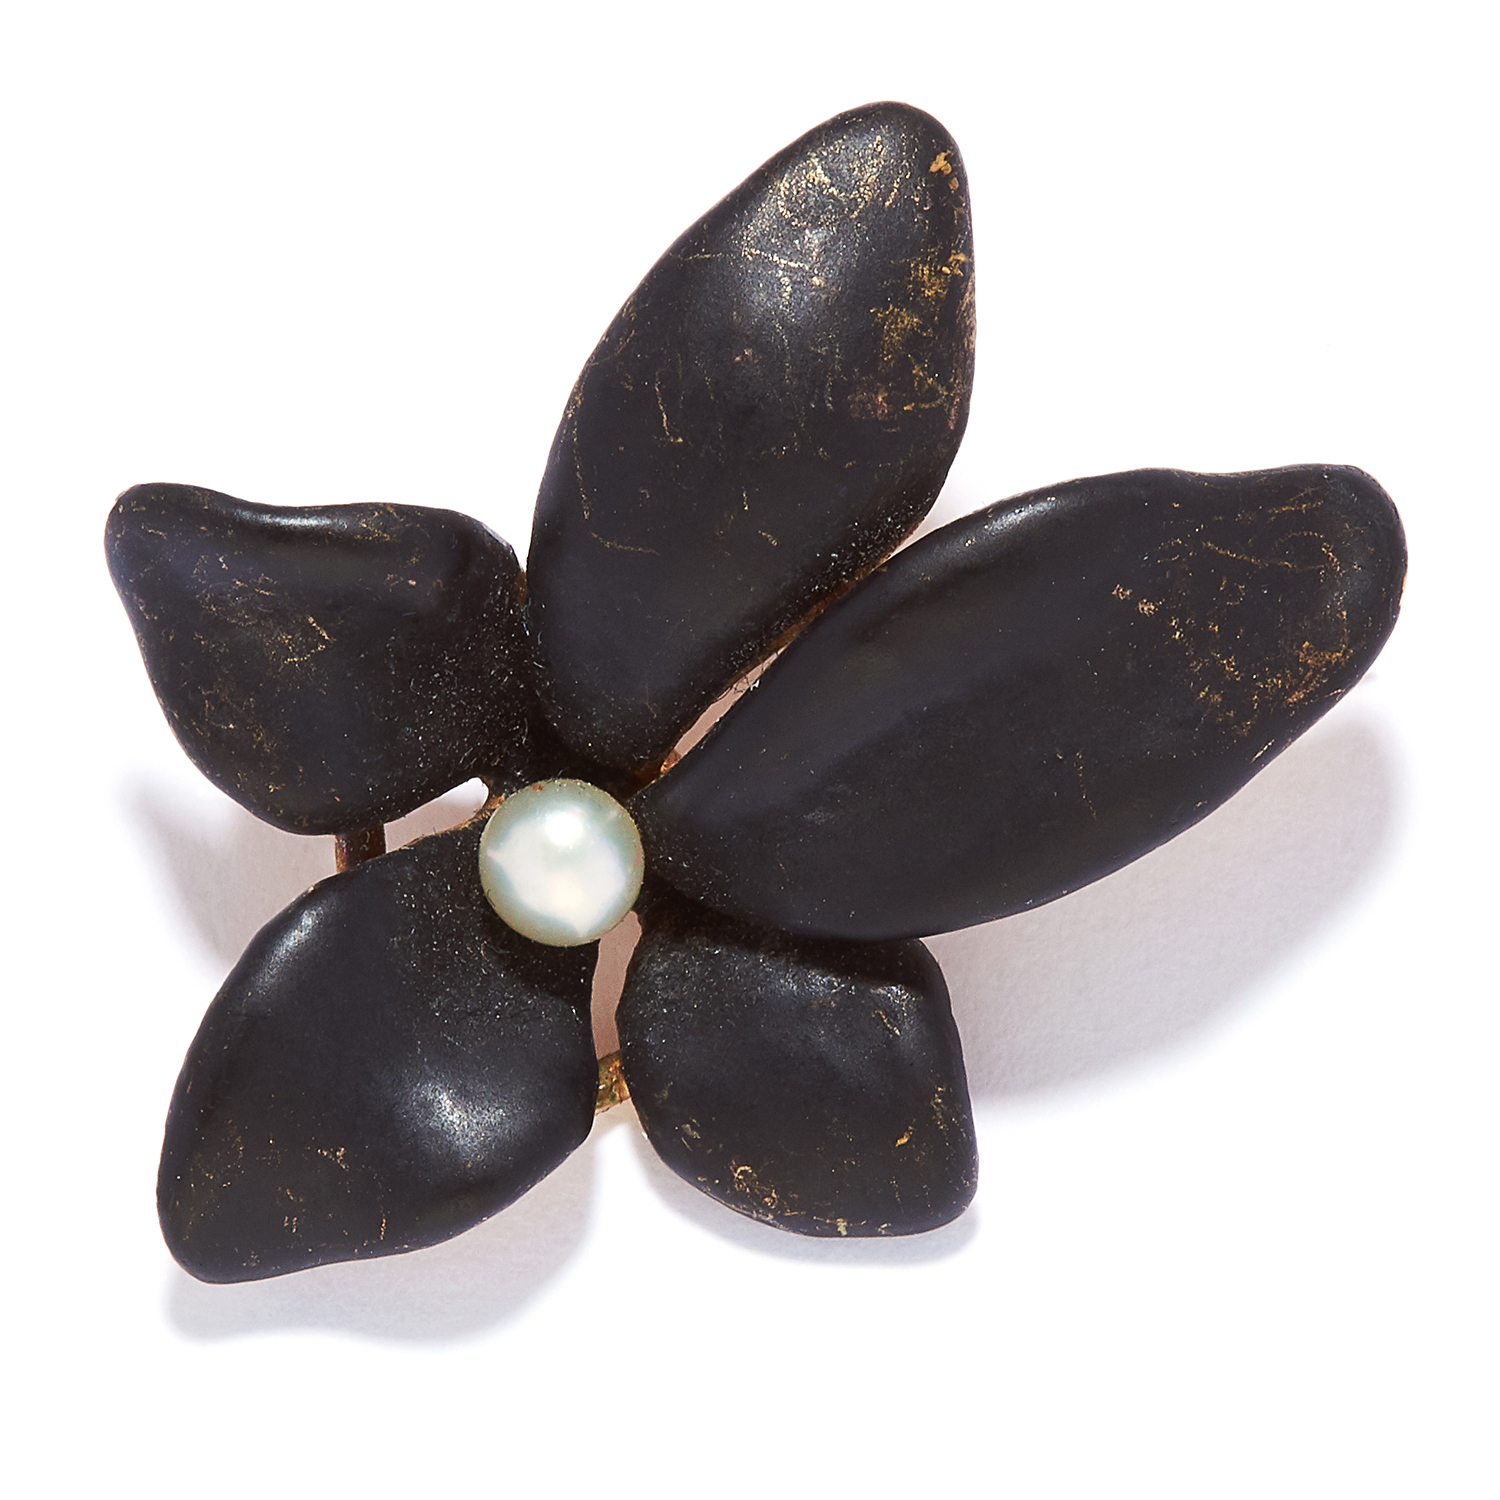 ANTIQUE PEARL AND ENAMEL FLOWER BROOCH in 14ct yellow gold, comprising of black enamel leaves and